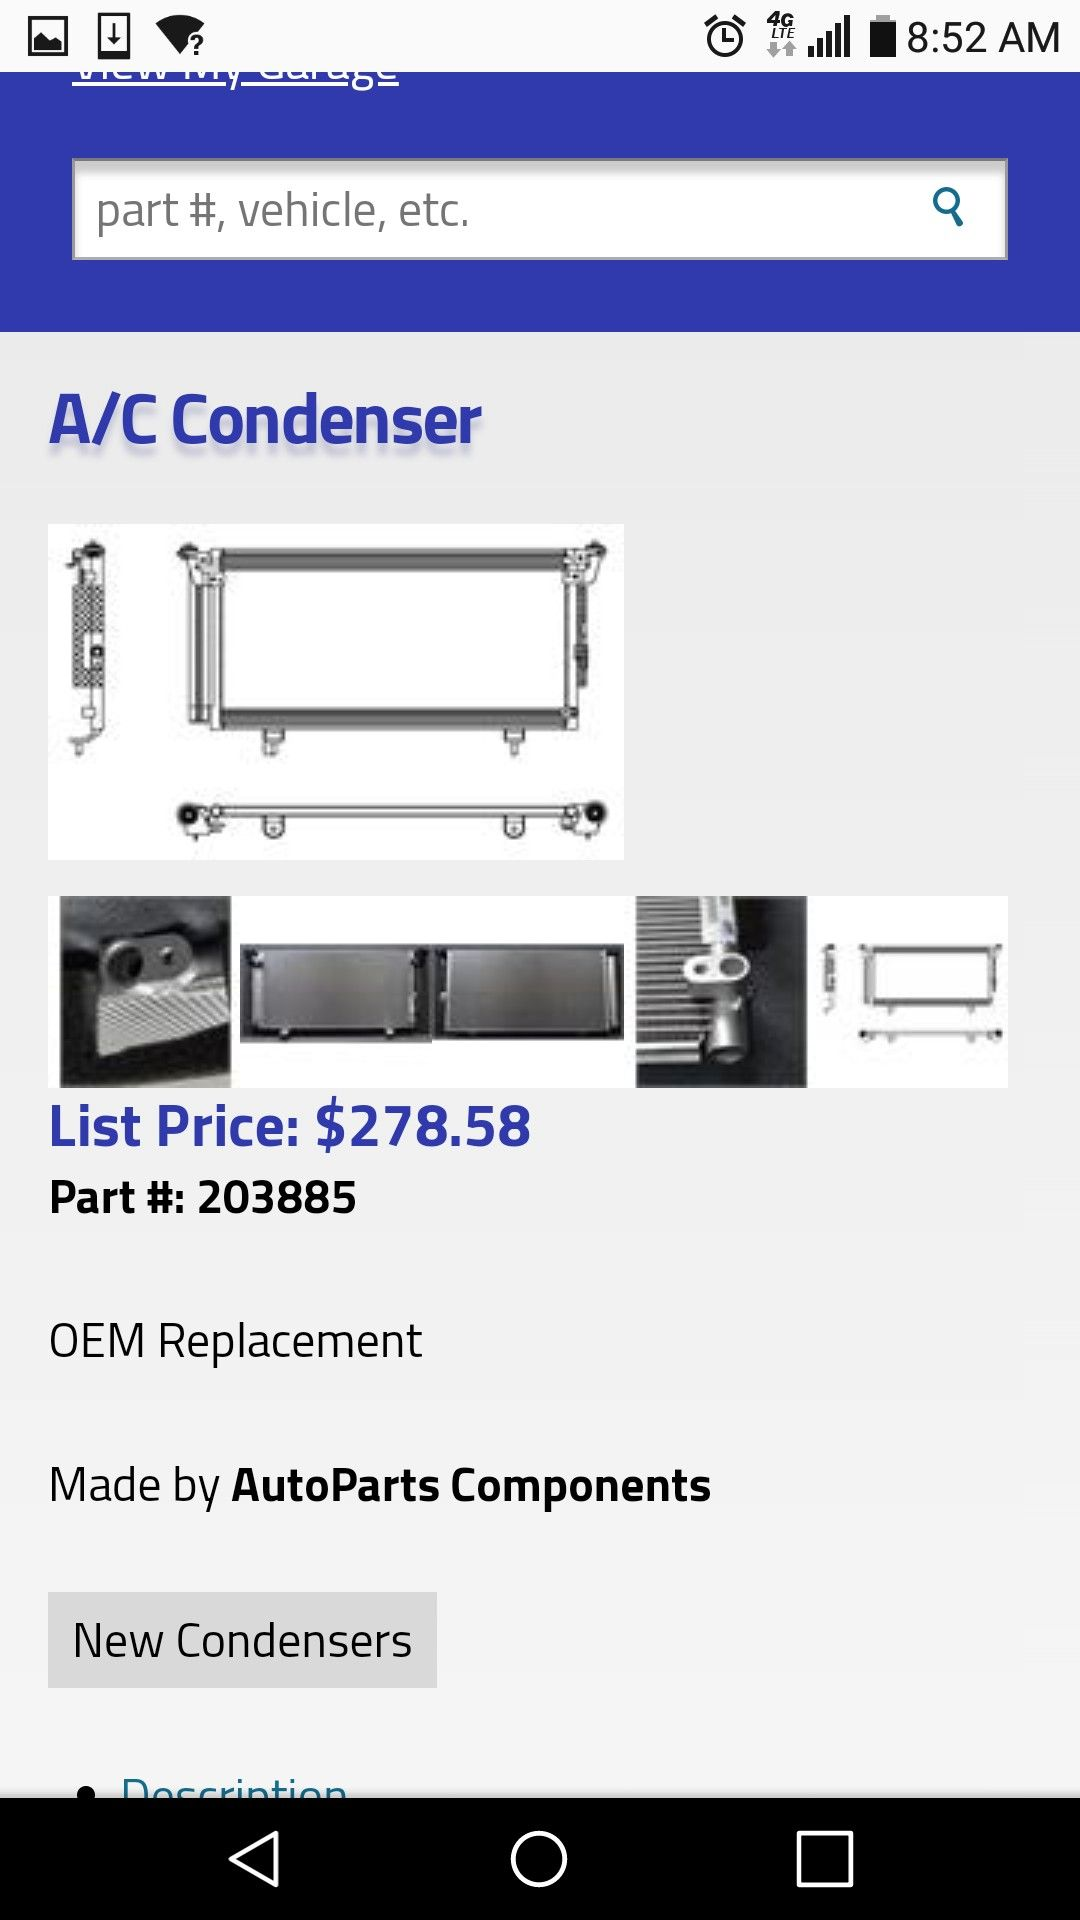 AC condenser for a Subaru Outback and Legacy